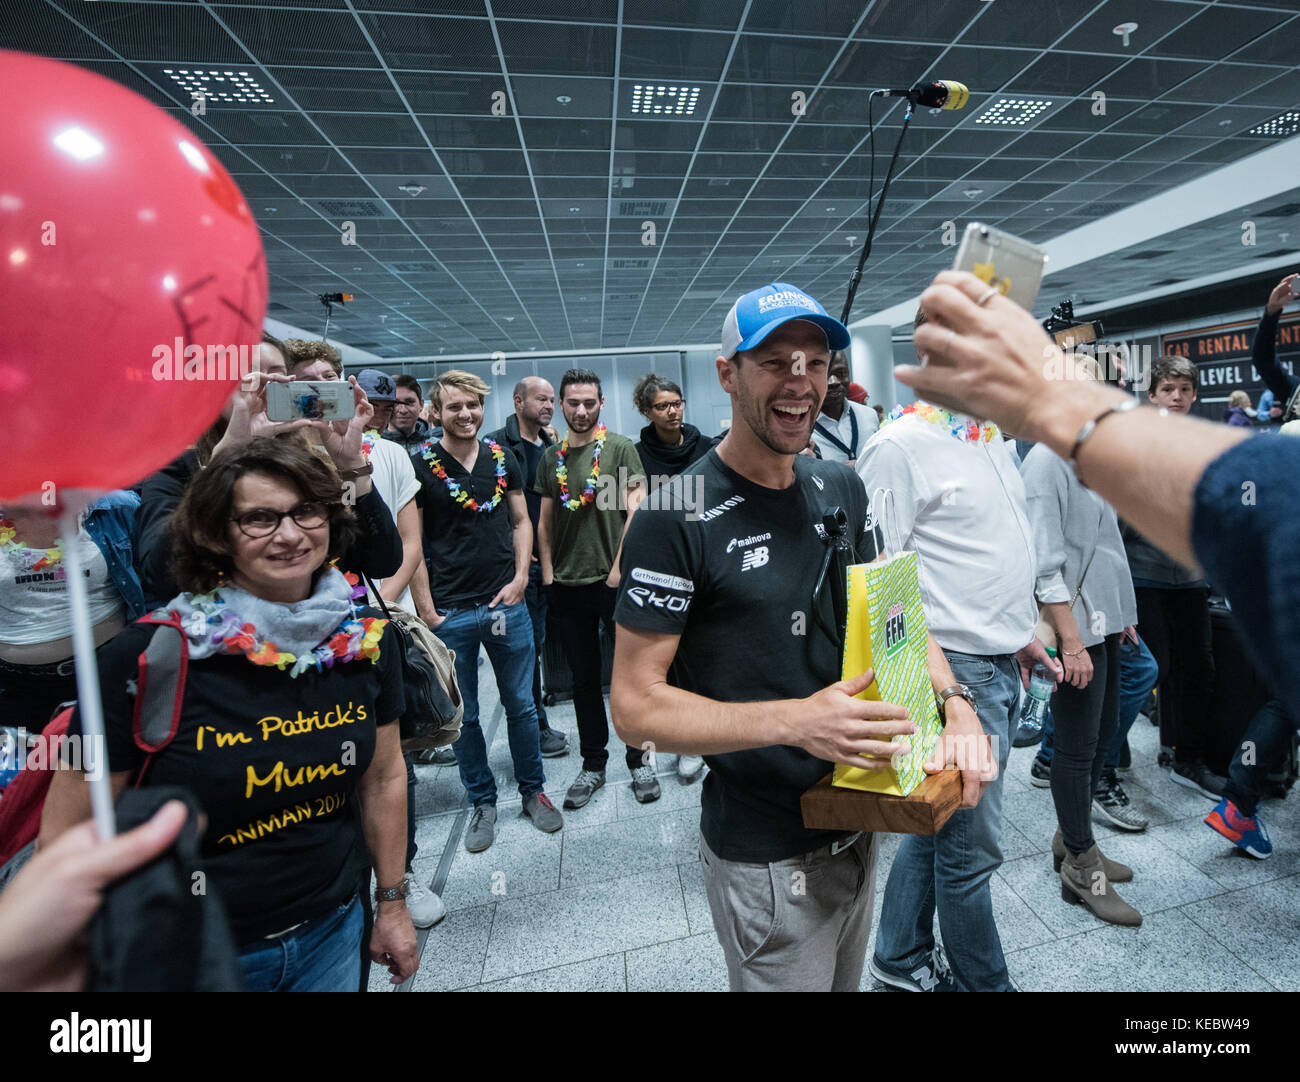 Frankfurt am Main, Germany. 19th Oct, 2017. Ironman World Champion Patrick Lange is received by supporters, among - Stock Image